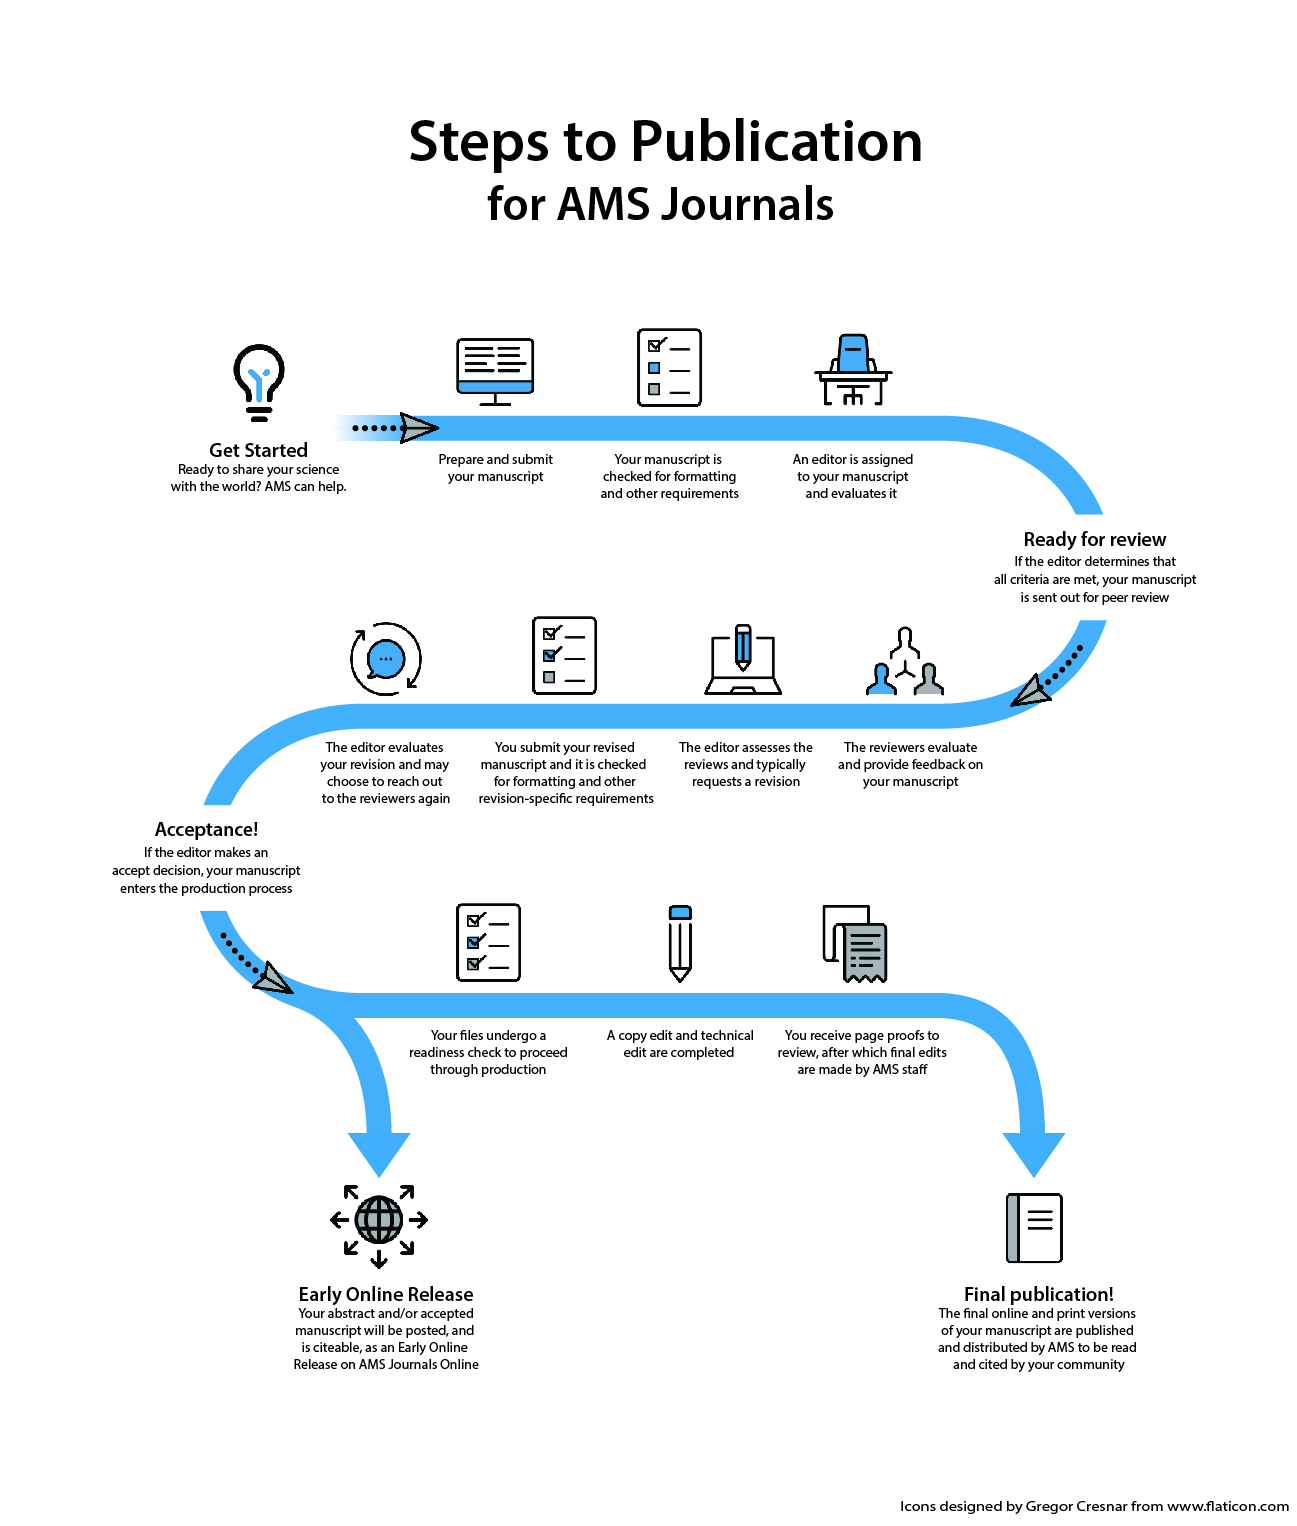 Steps to Publication